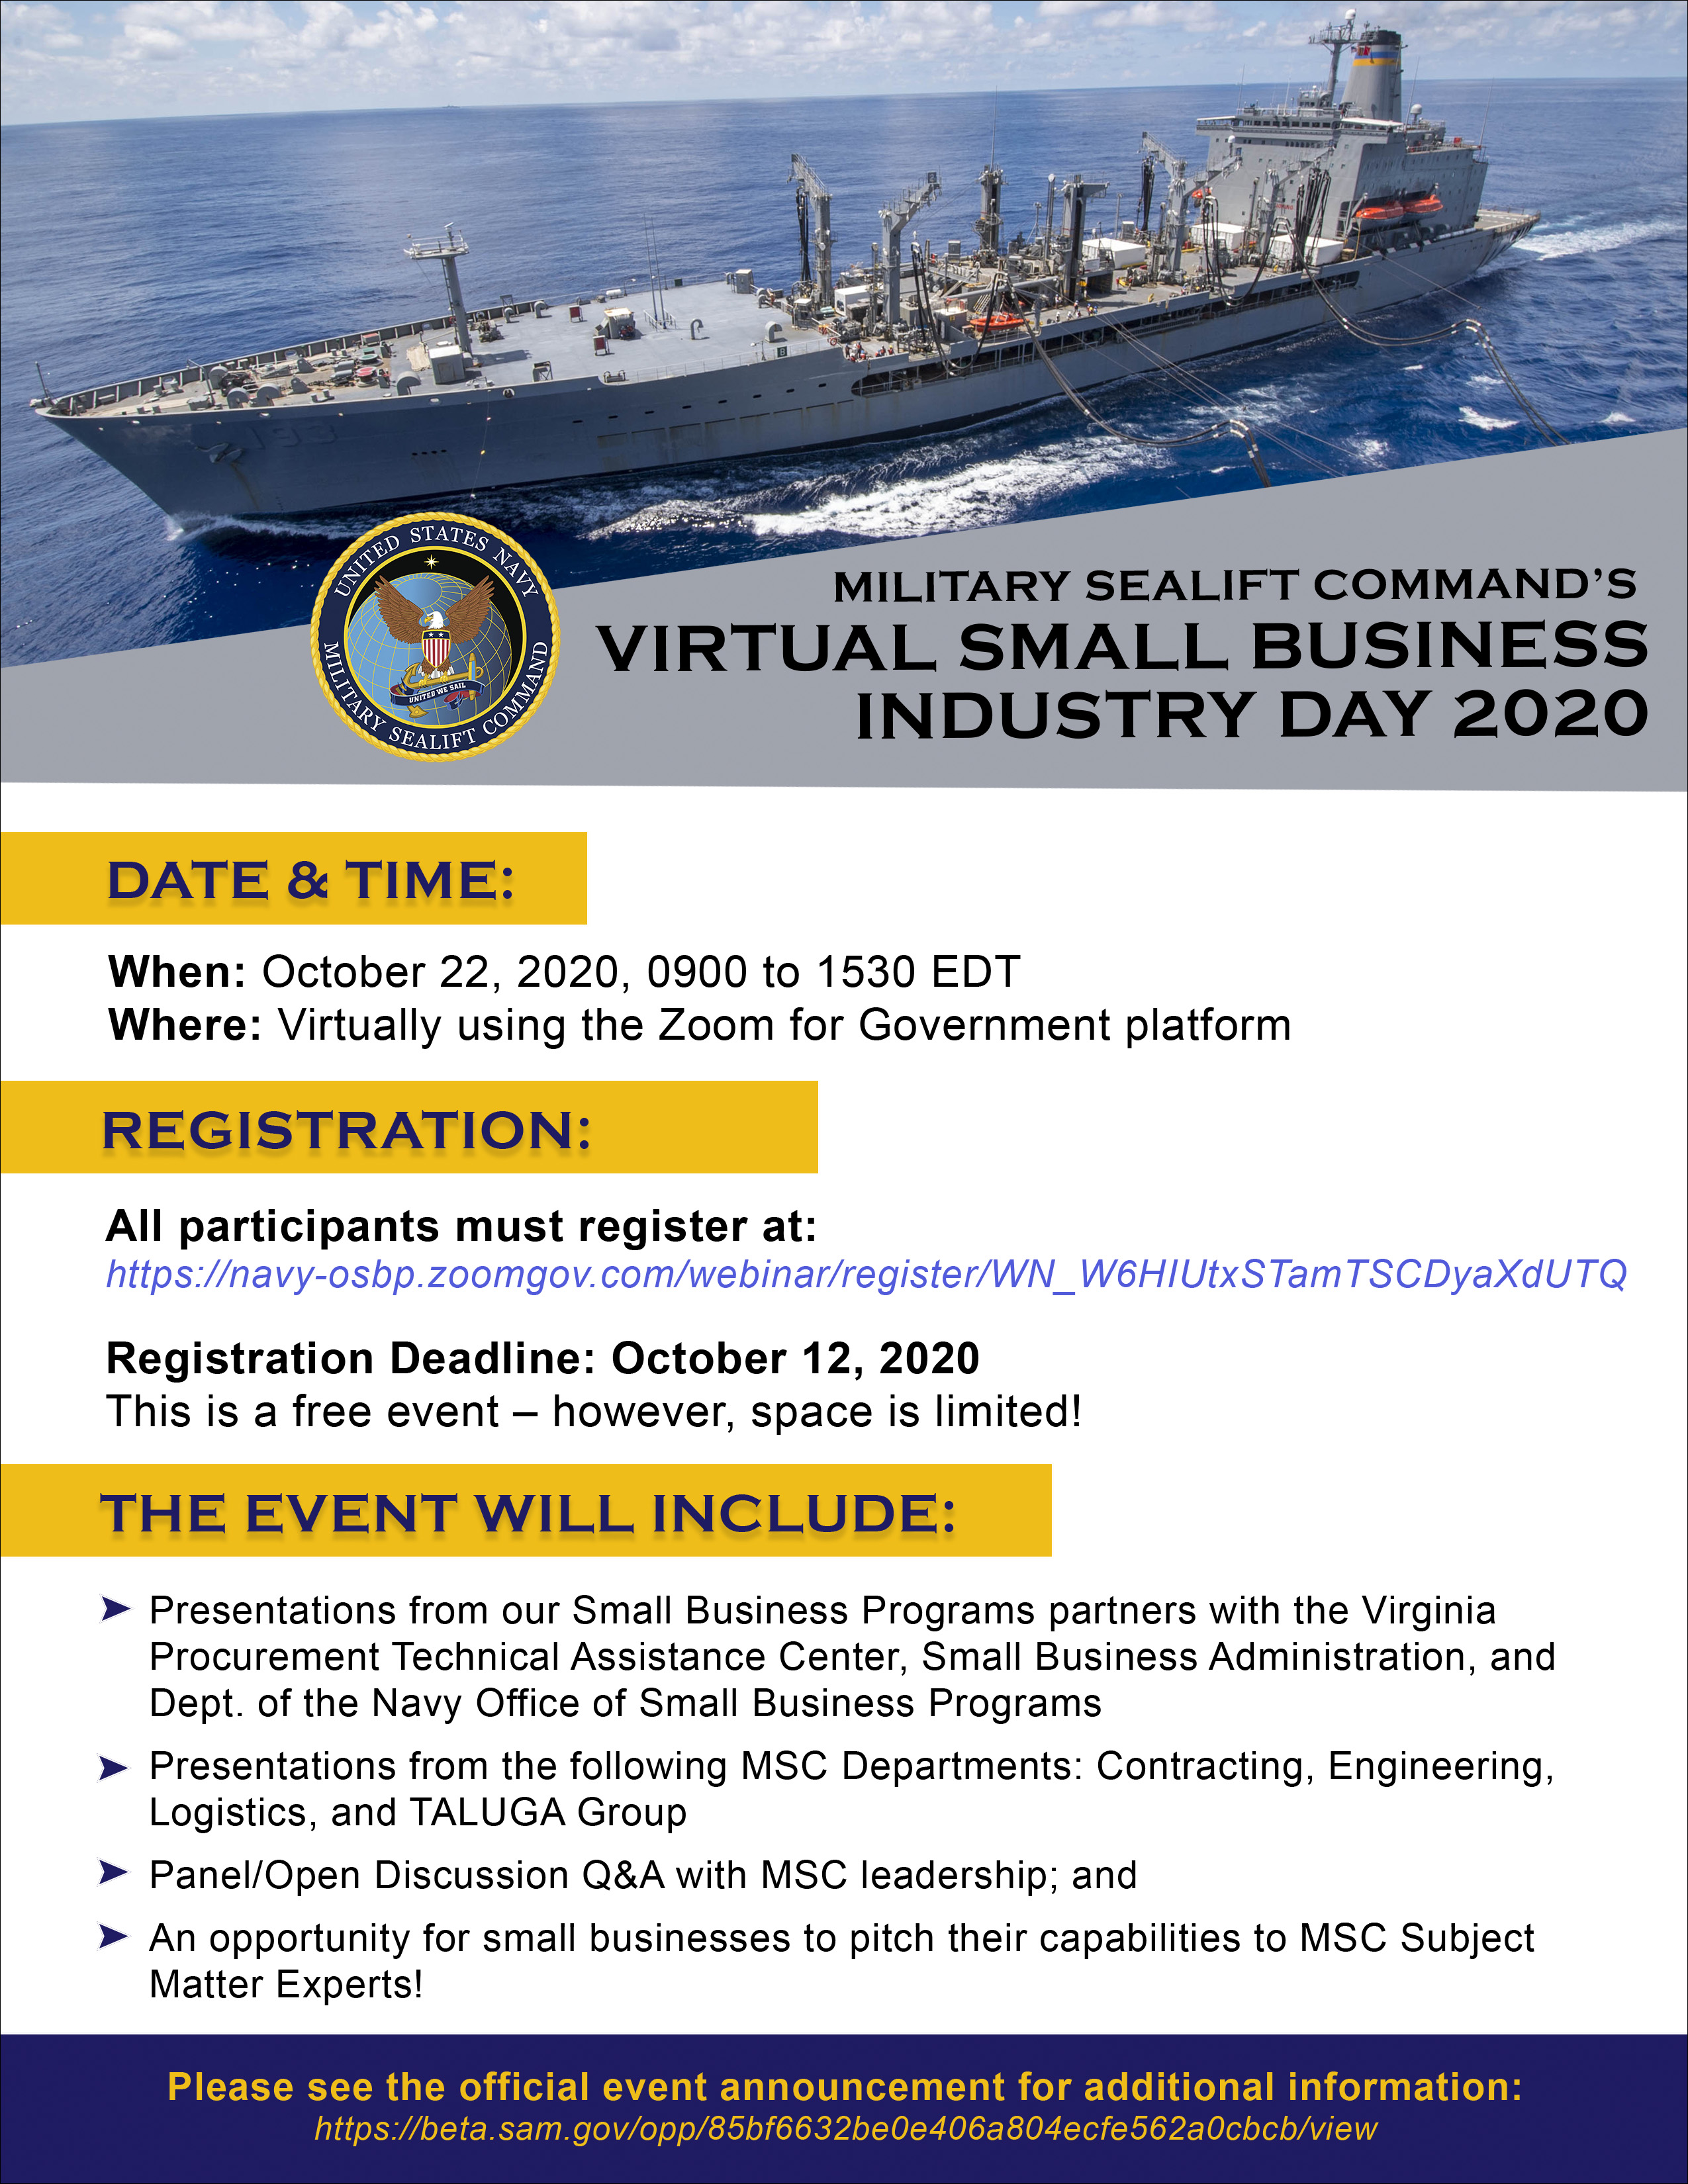 Virtual Small Business Industry Day 2020